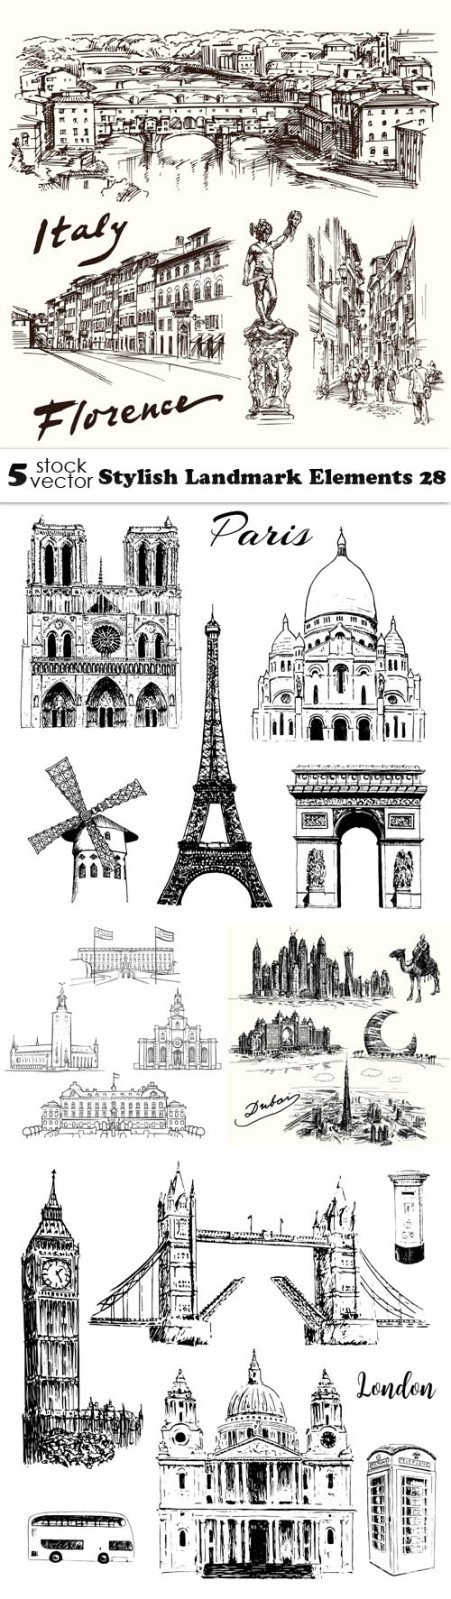 Vectors - Stylish Landmark Elements 28